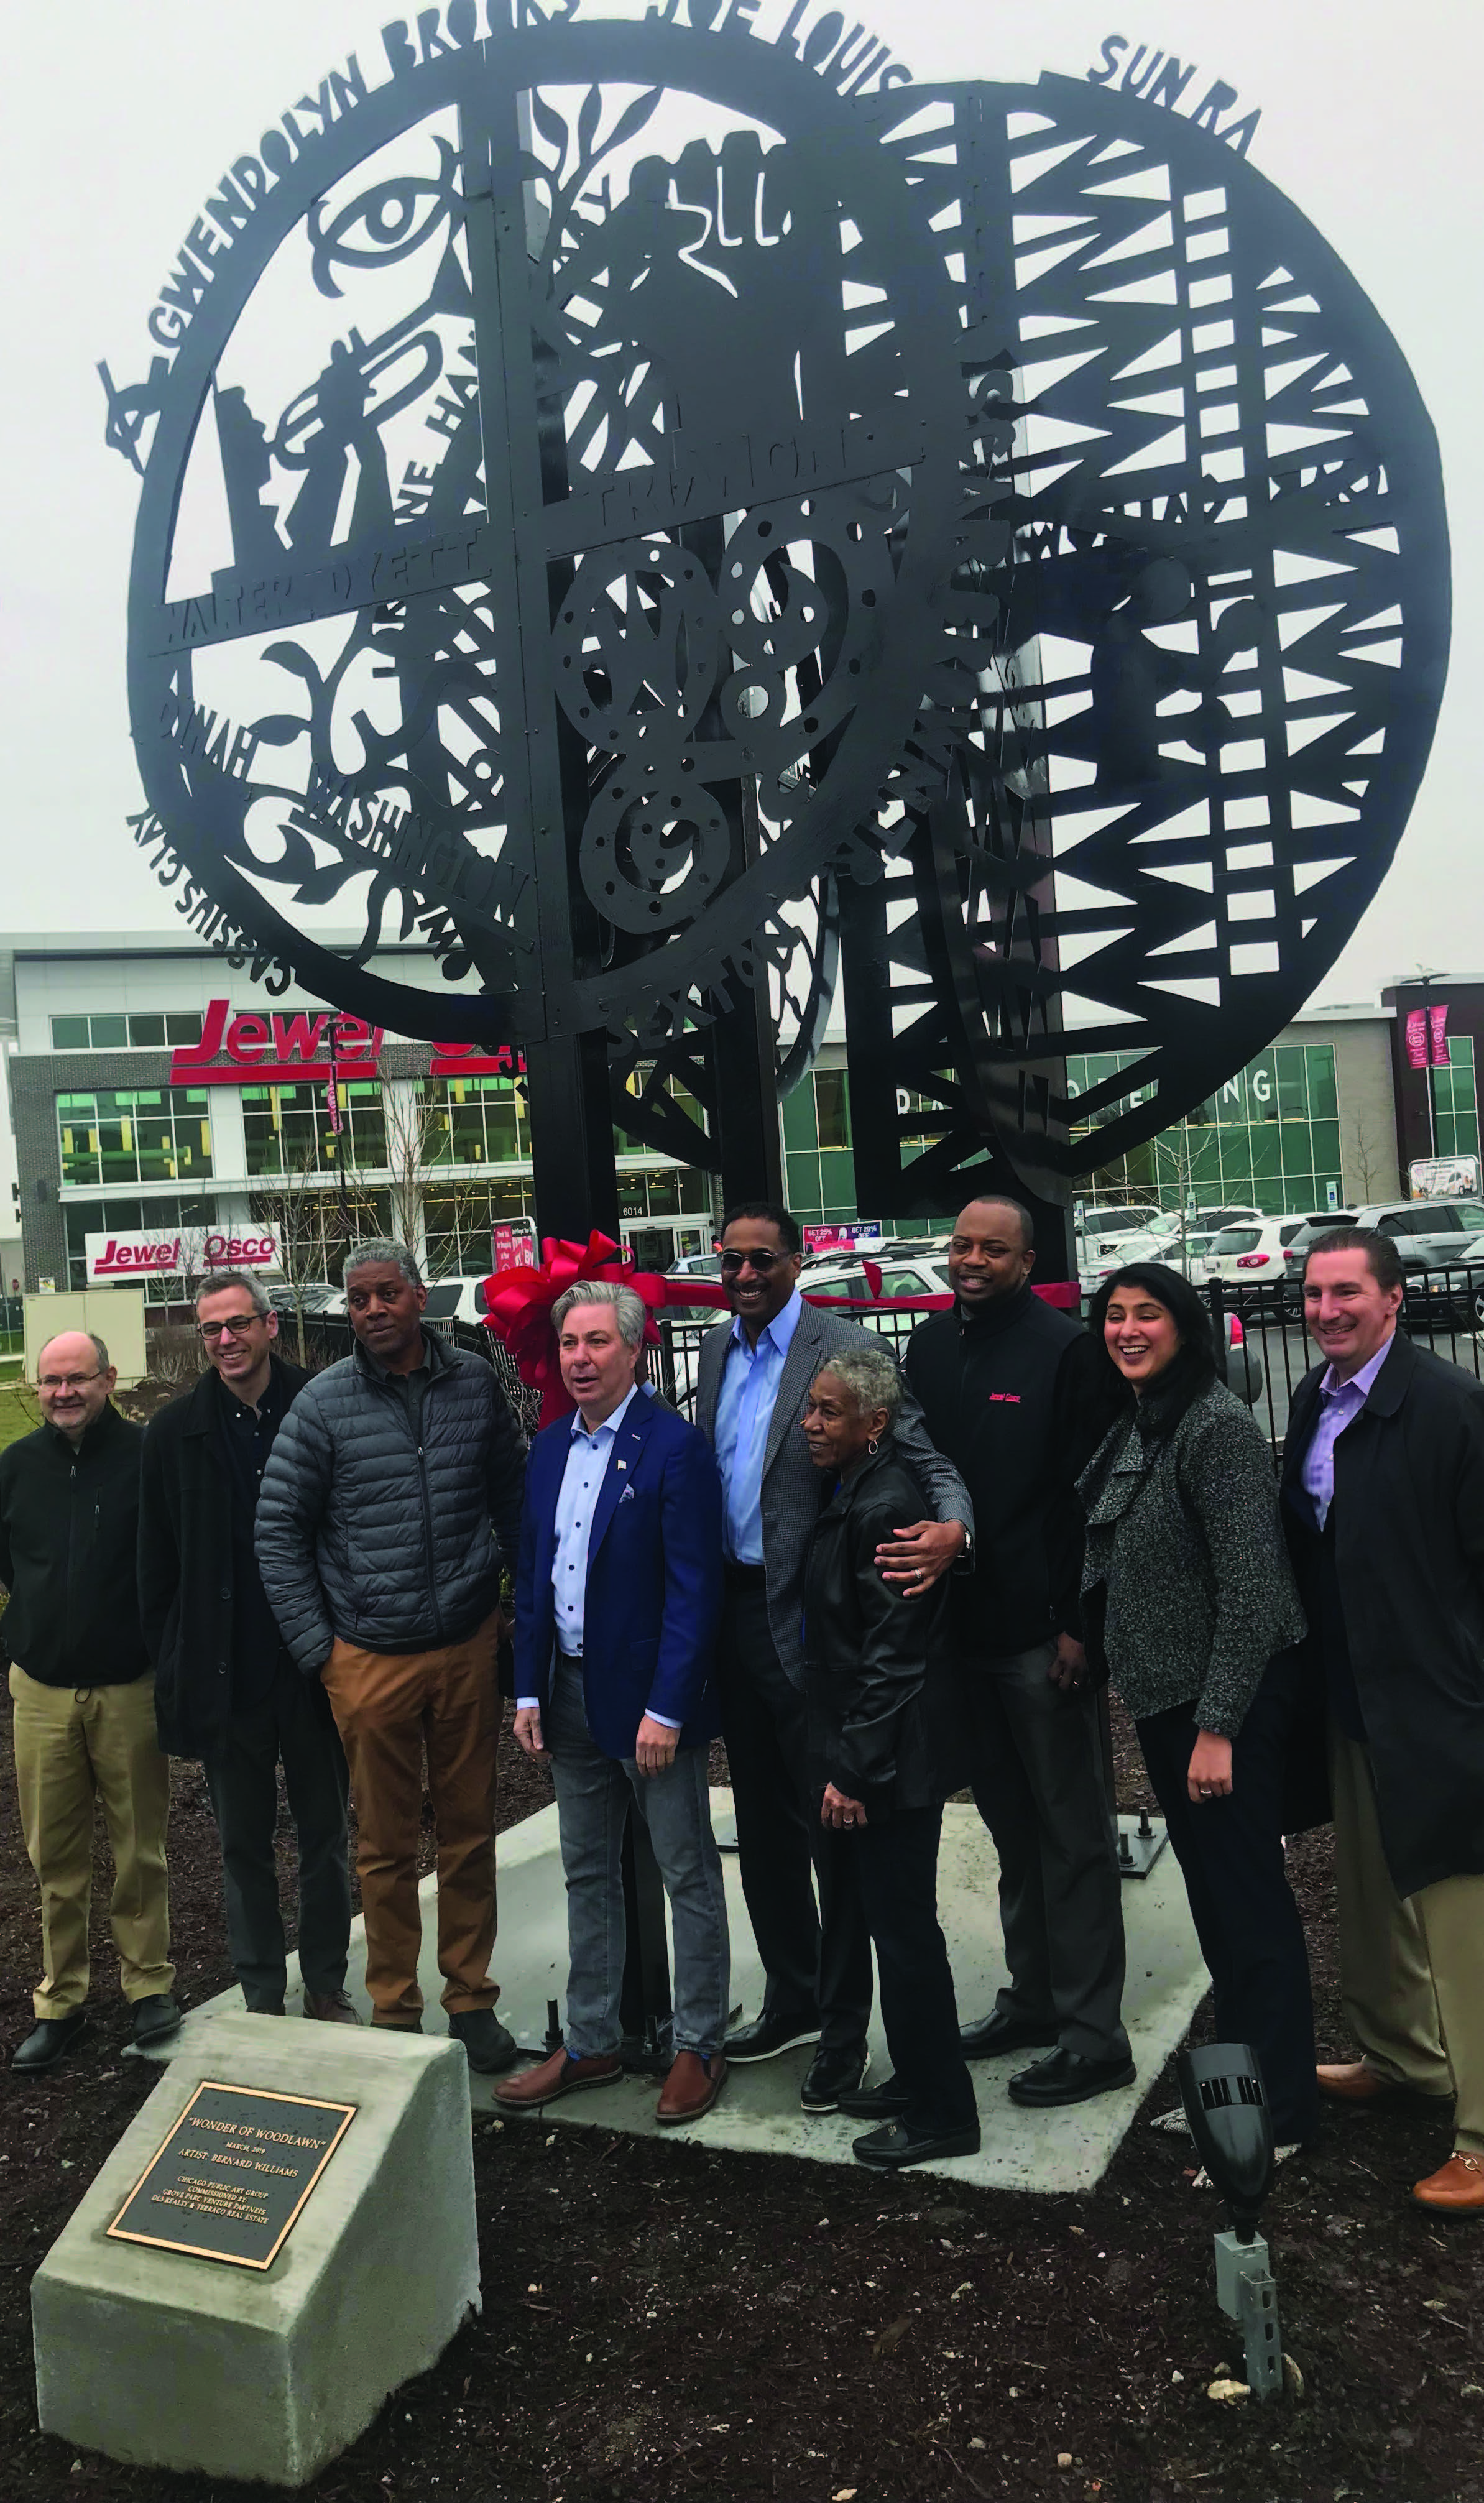 COMMUNITY DEVELOPERS AND RESIDENTS COME TOGETHER TO DEDICATE A NEW PUBLIC SCULPTURE